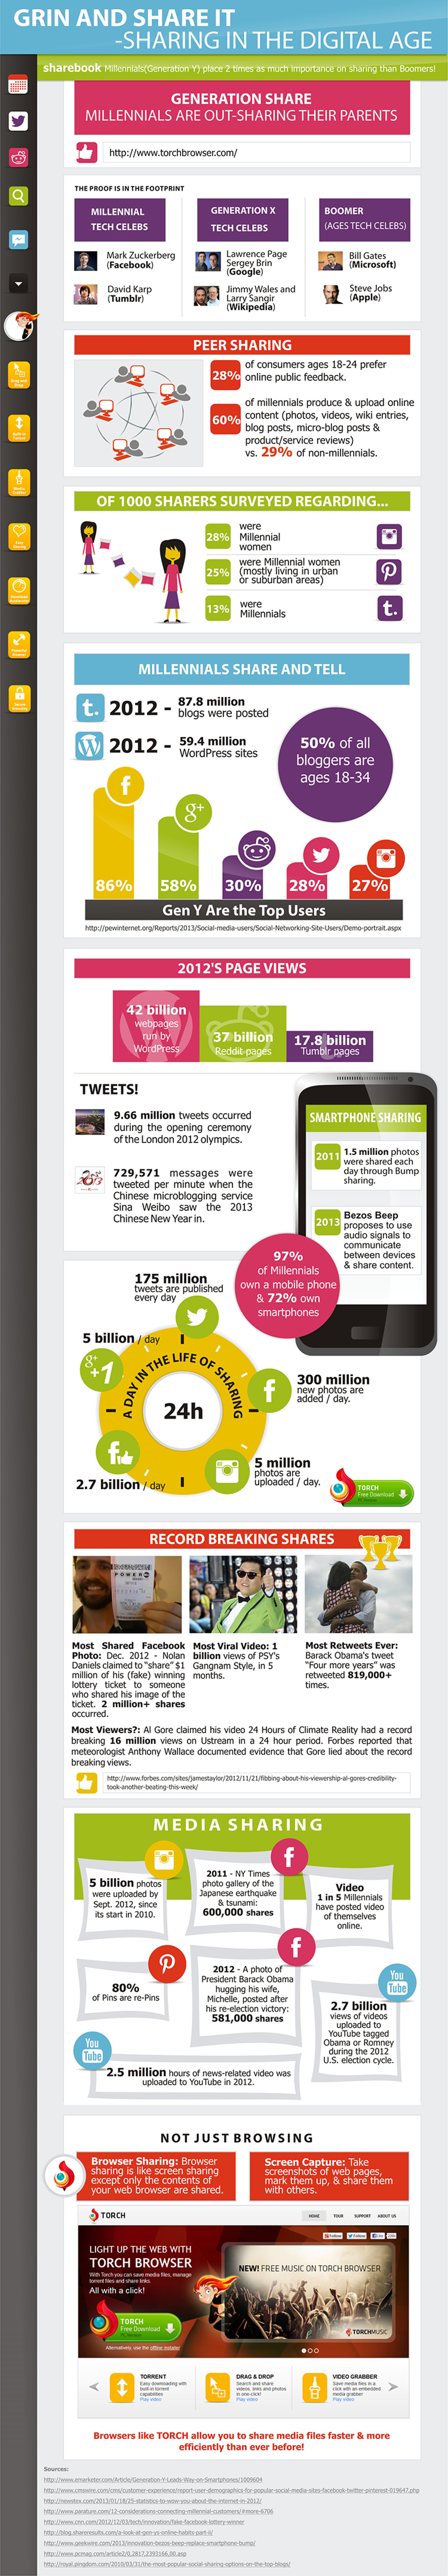 Sharing in the Digital Age Infographic